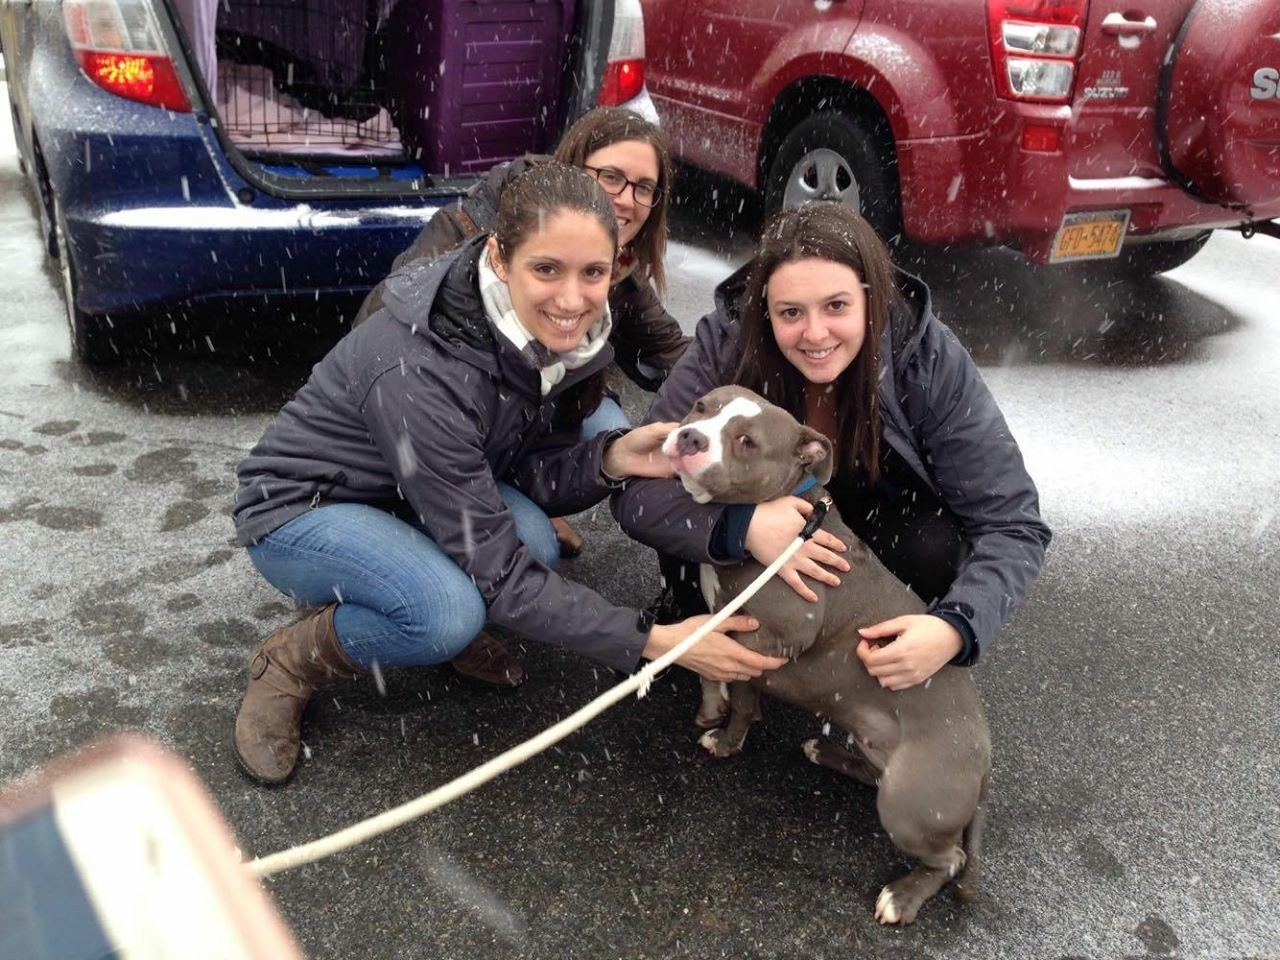 Picking up Charlotte at the shelter (I'm on the right)